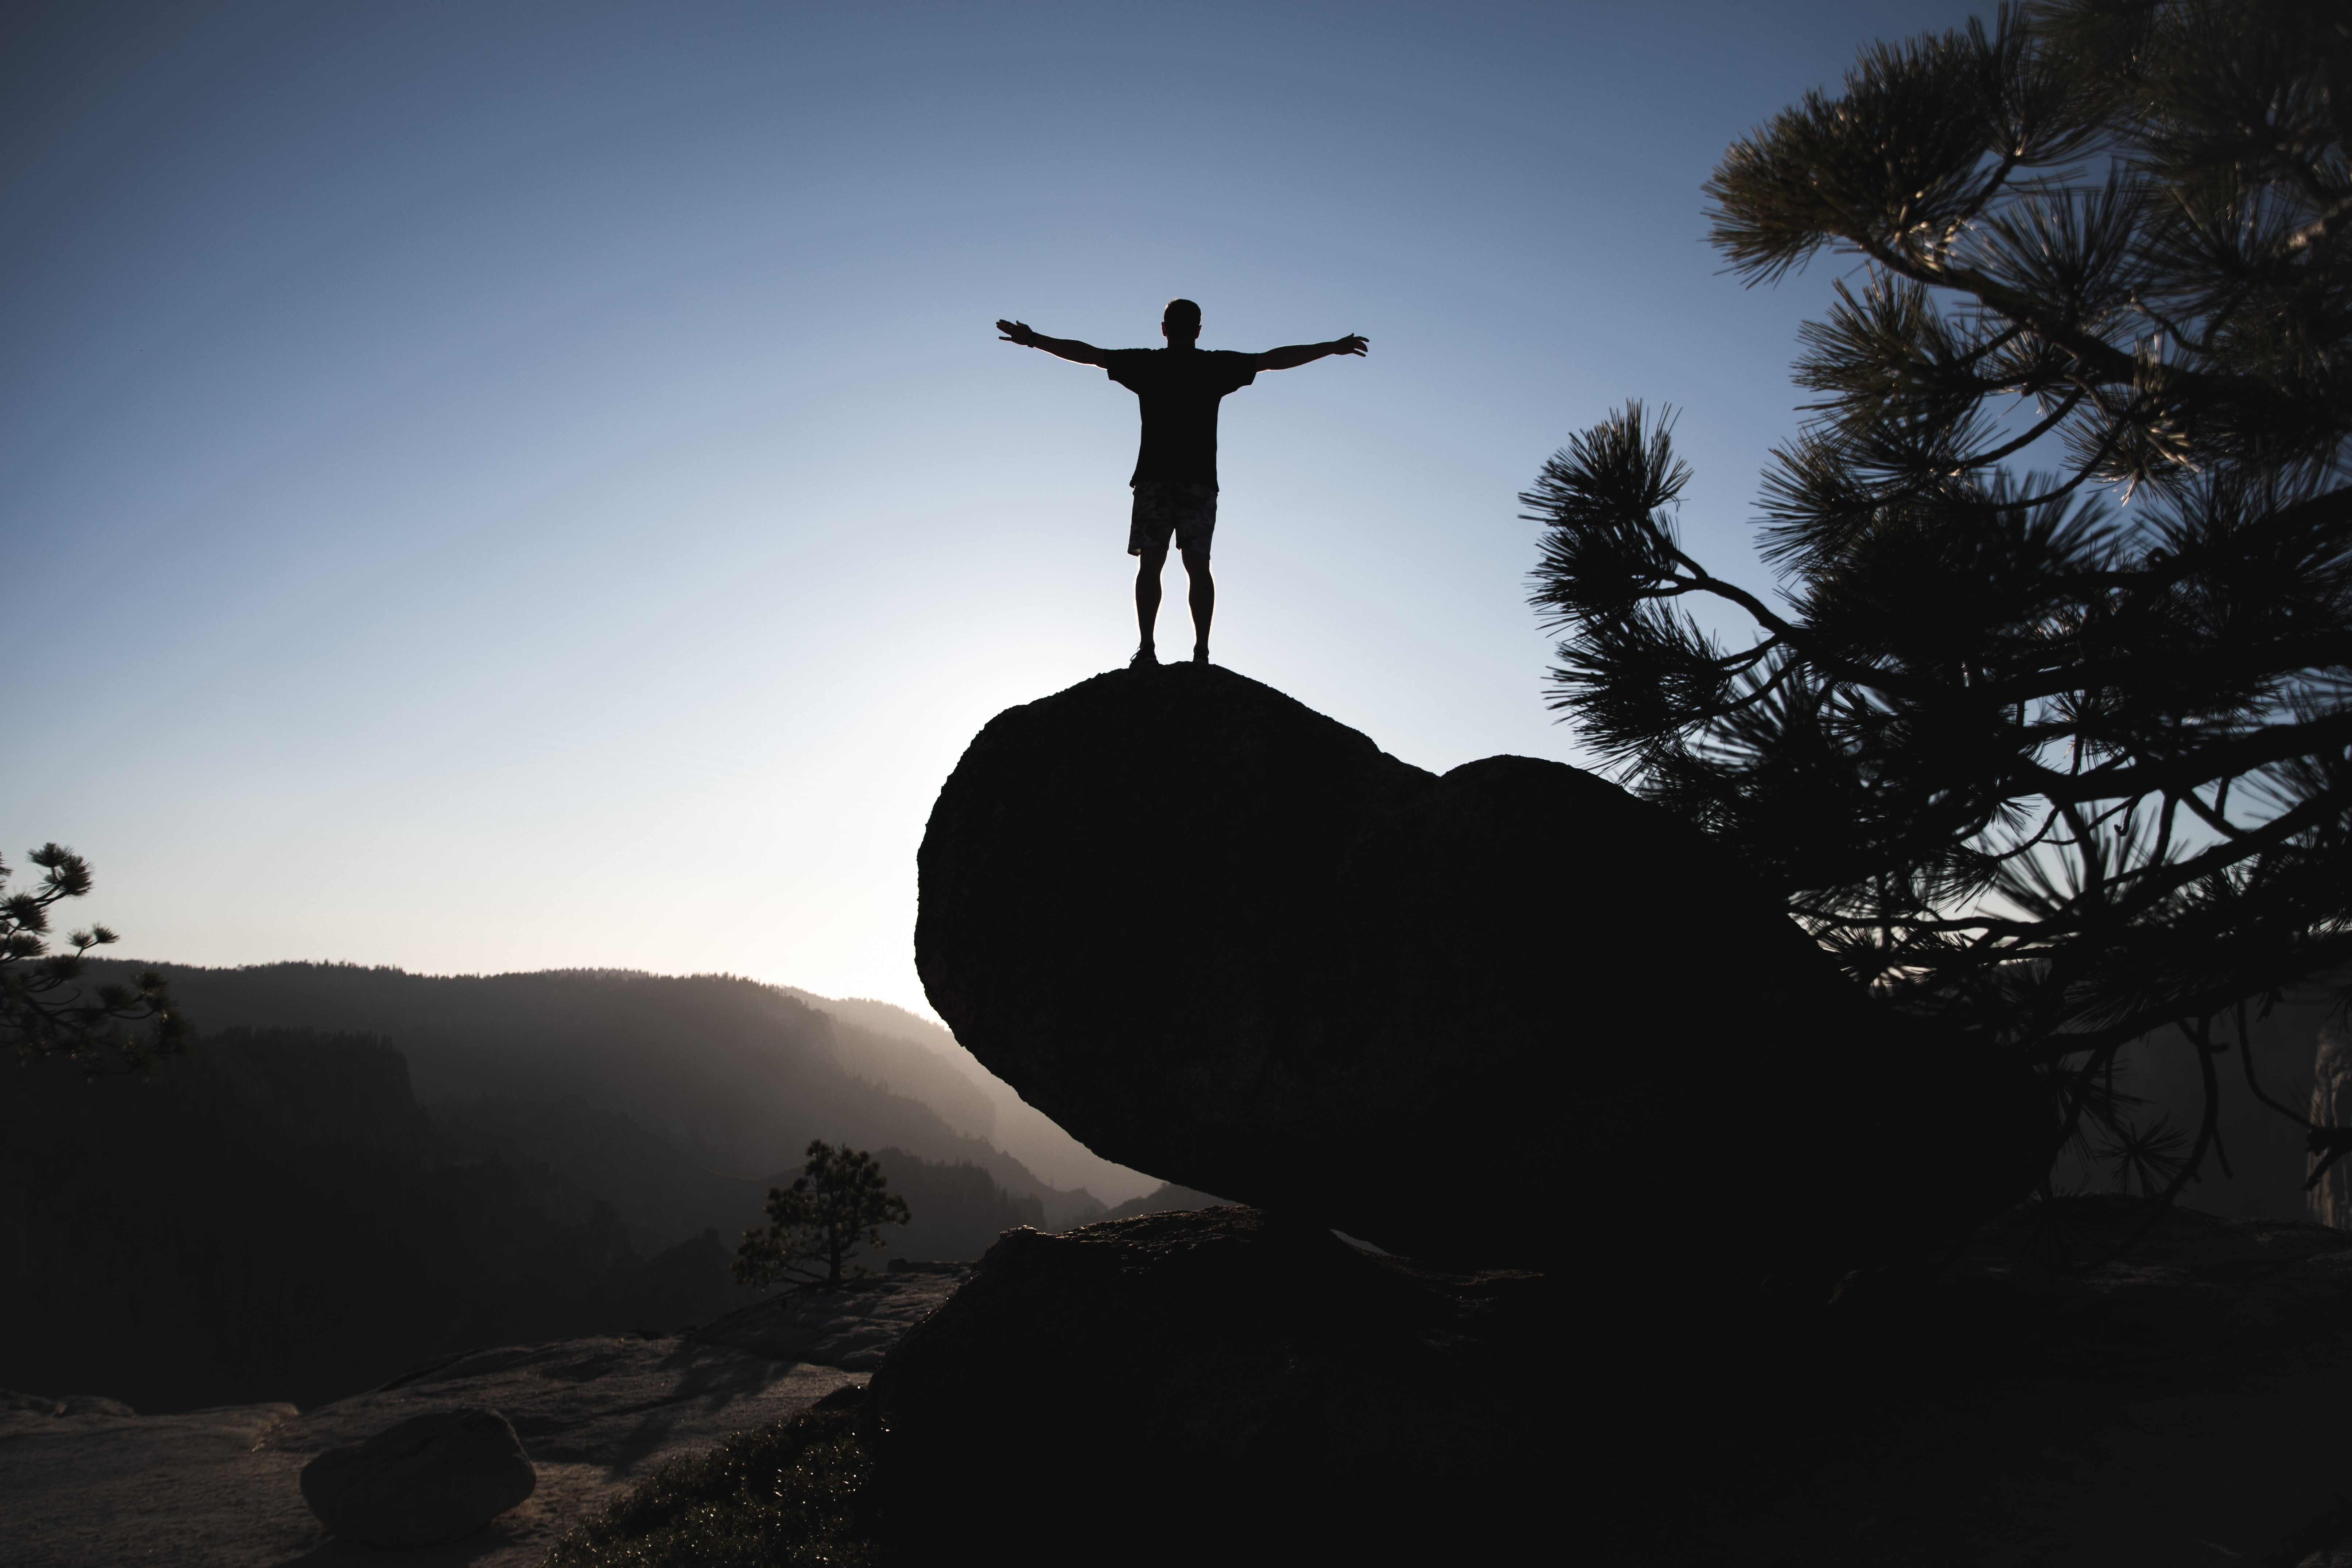 silhouette of man standing on boulder during daytime